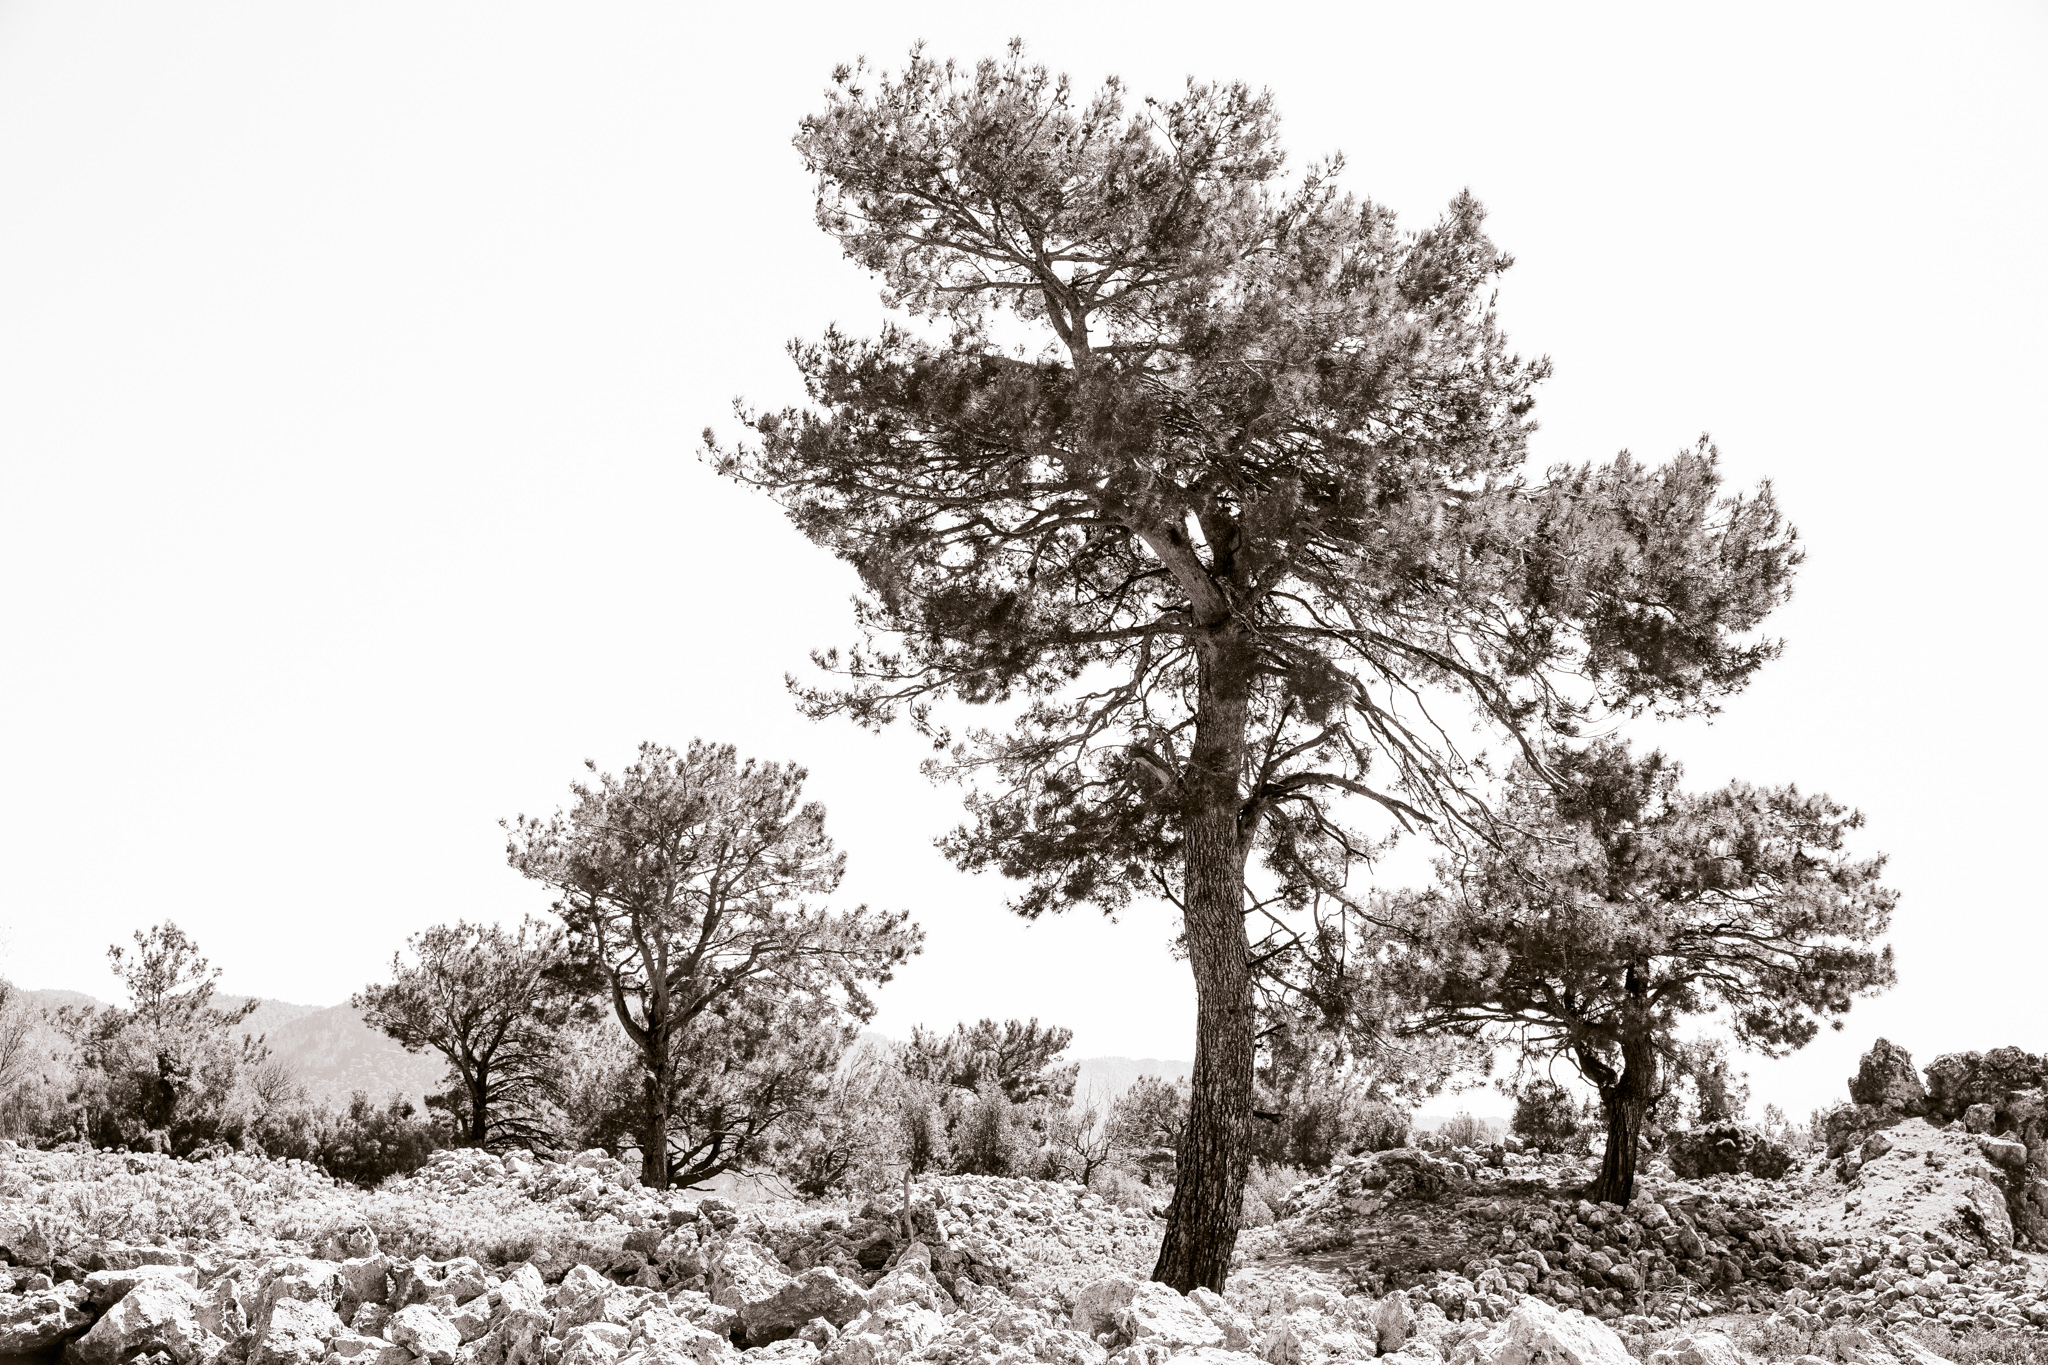 lycian-way_village1-2737-several-lone-trees.jpg